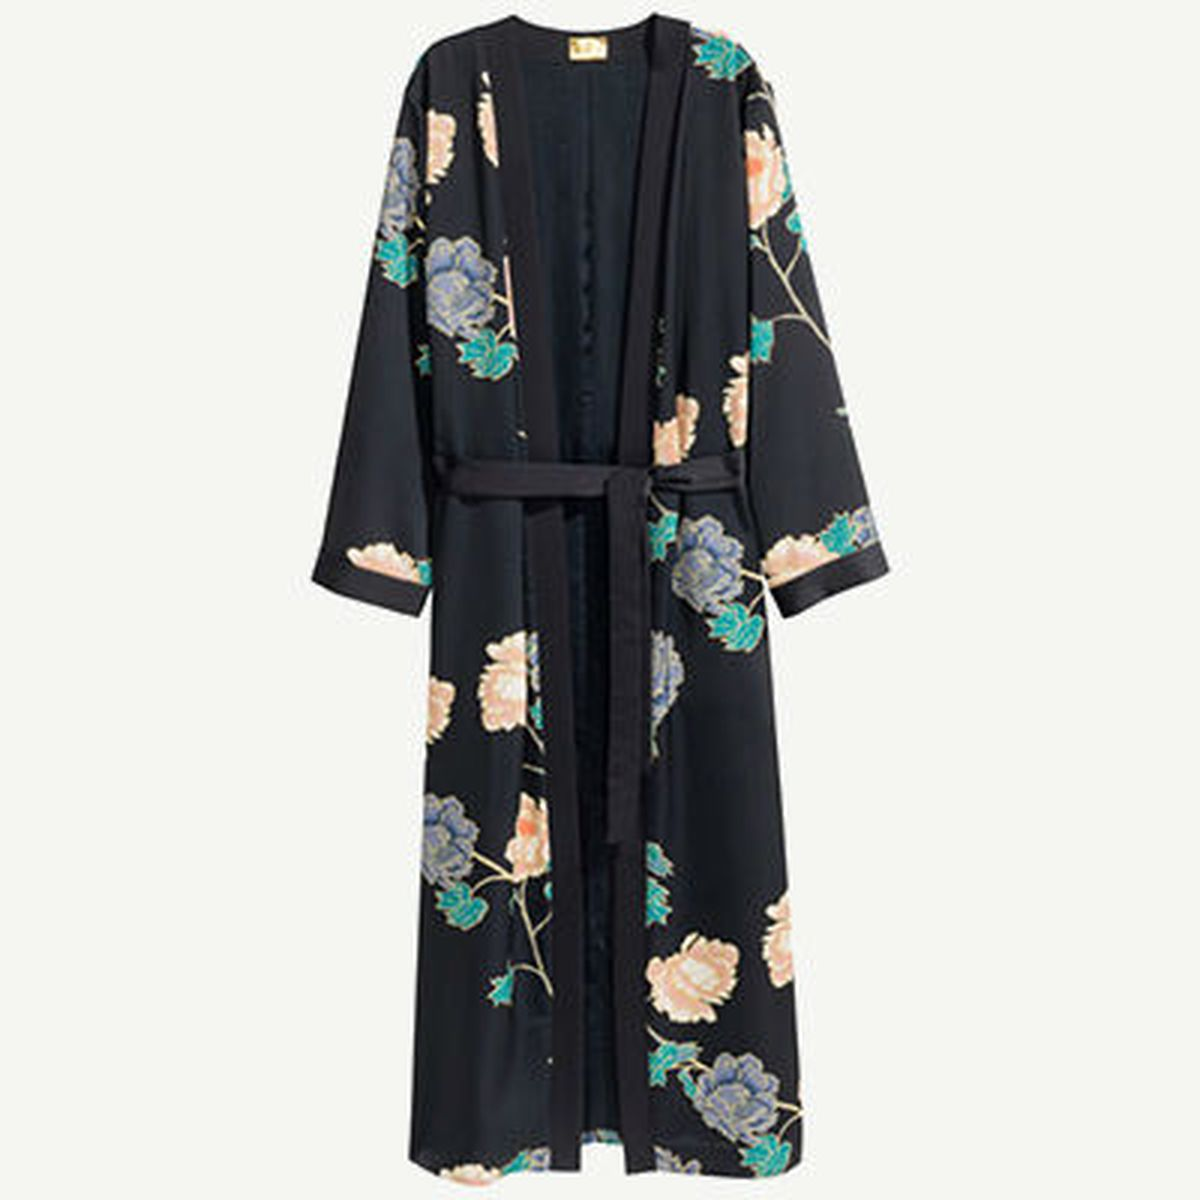 Silk Robes Actually Make Great Light Coats - Racked